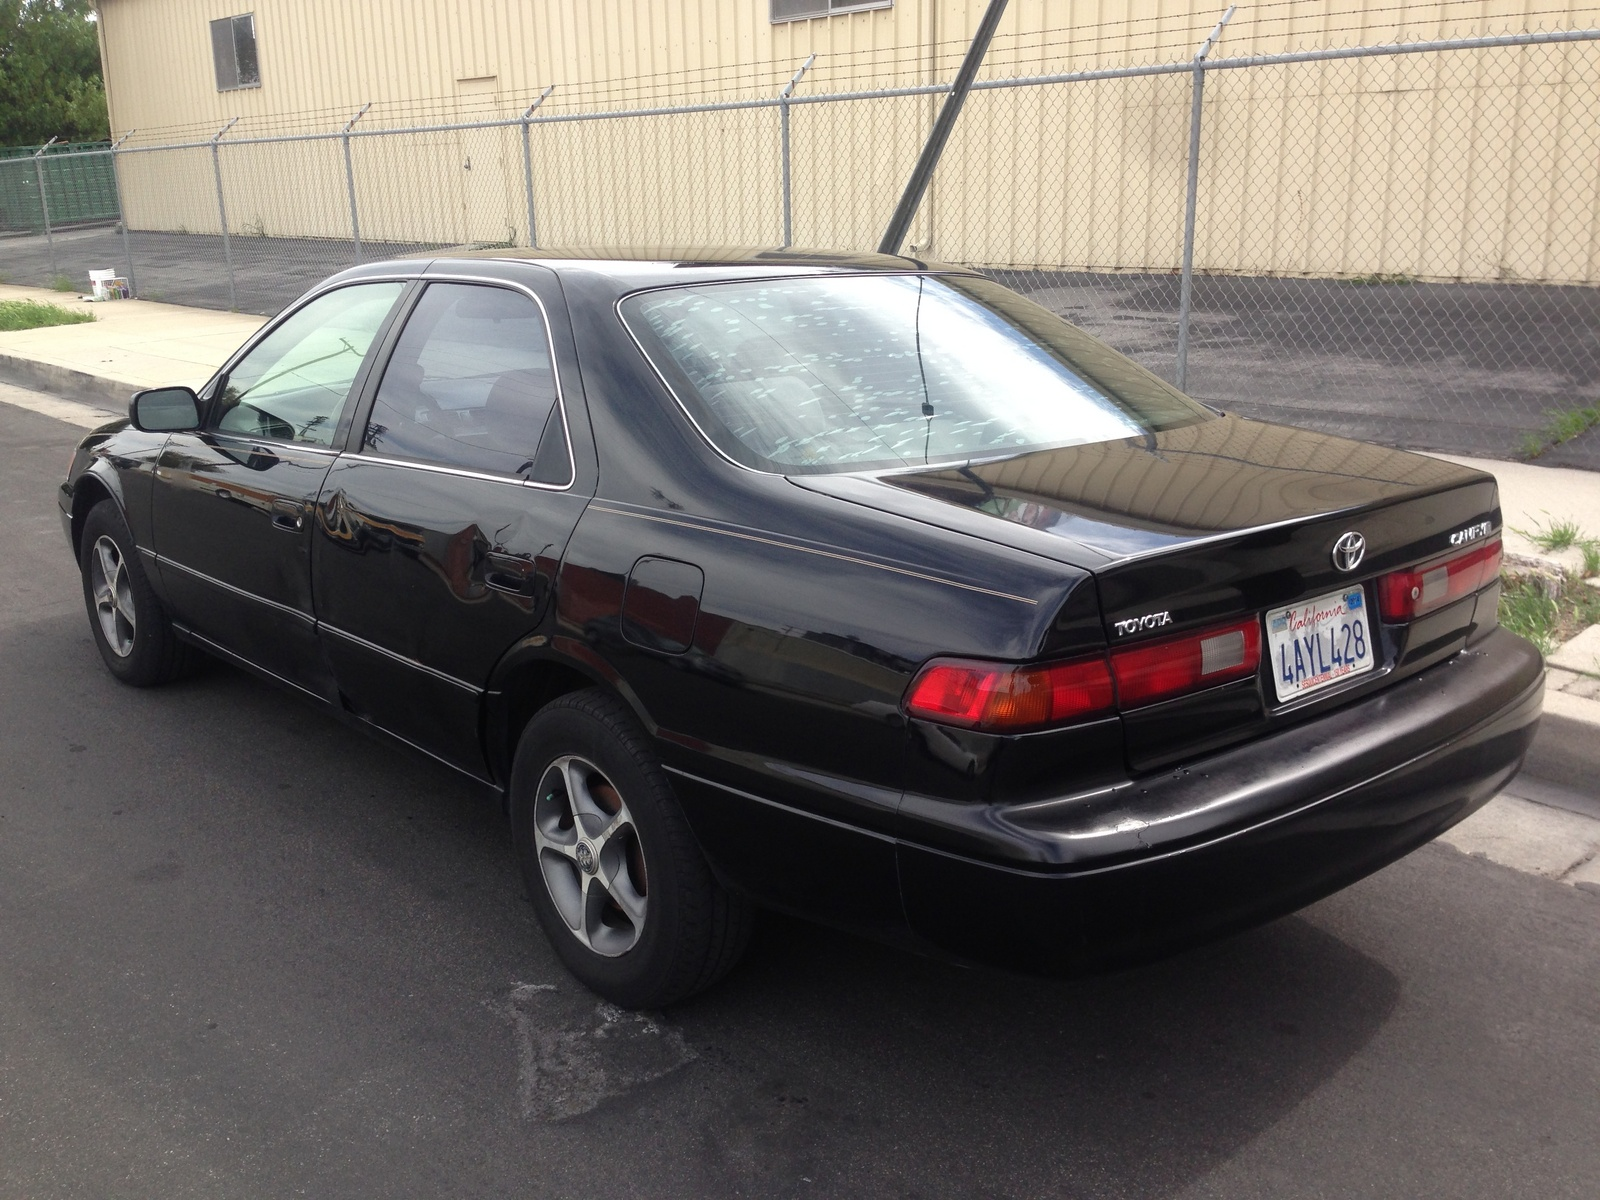 What's your take on the 1998 Toyota Camry?